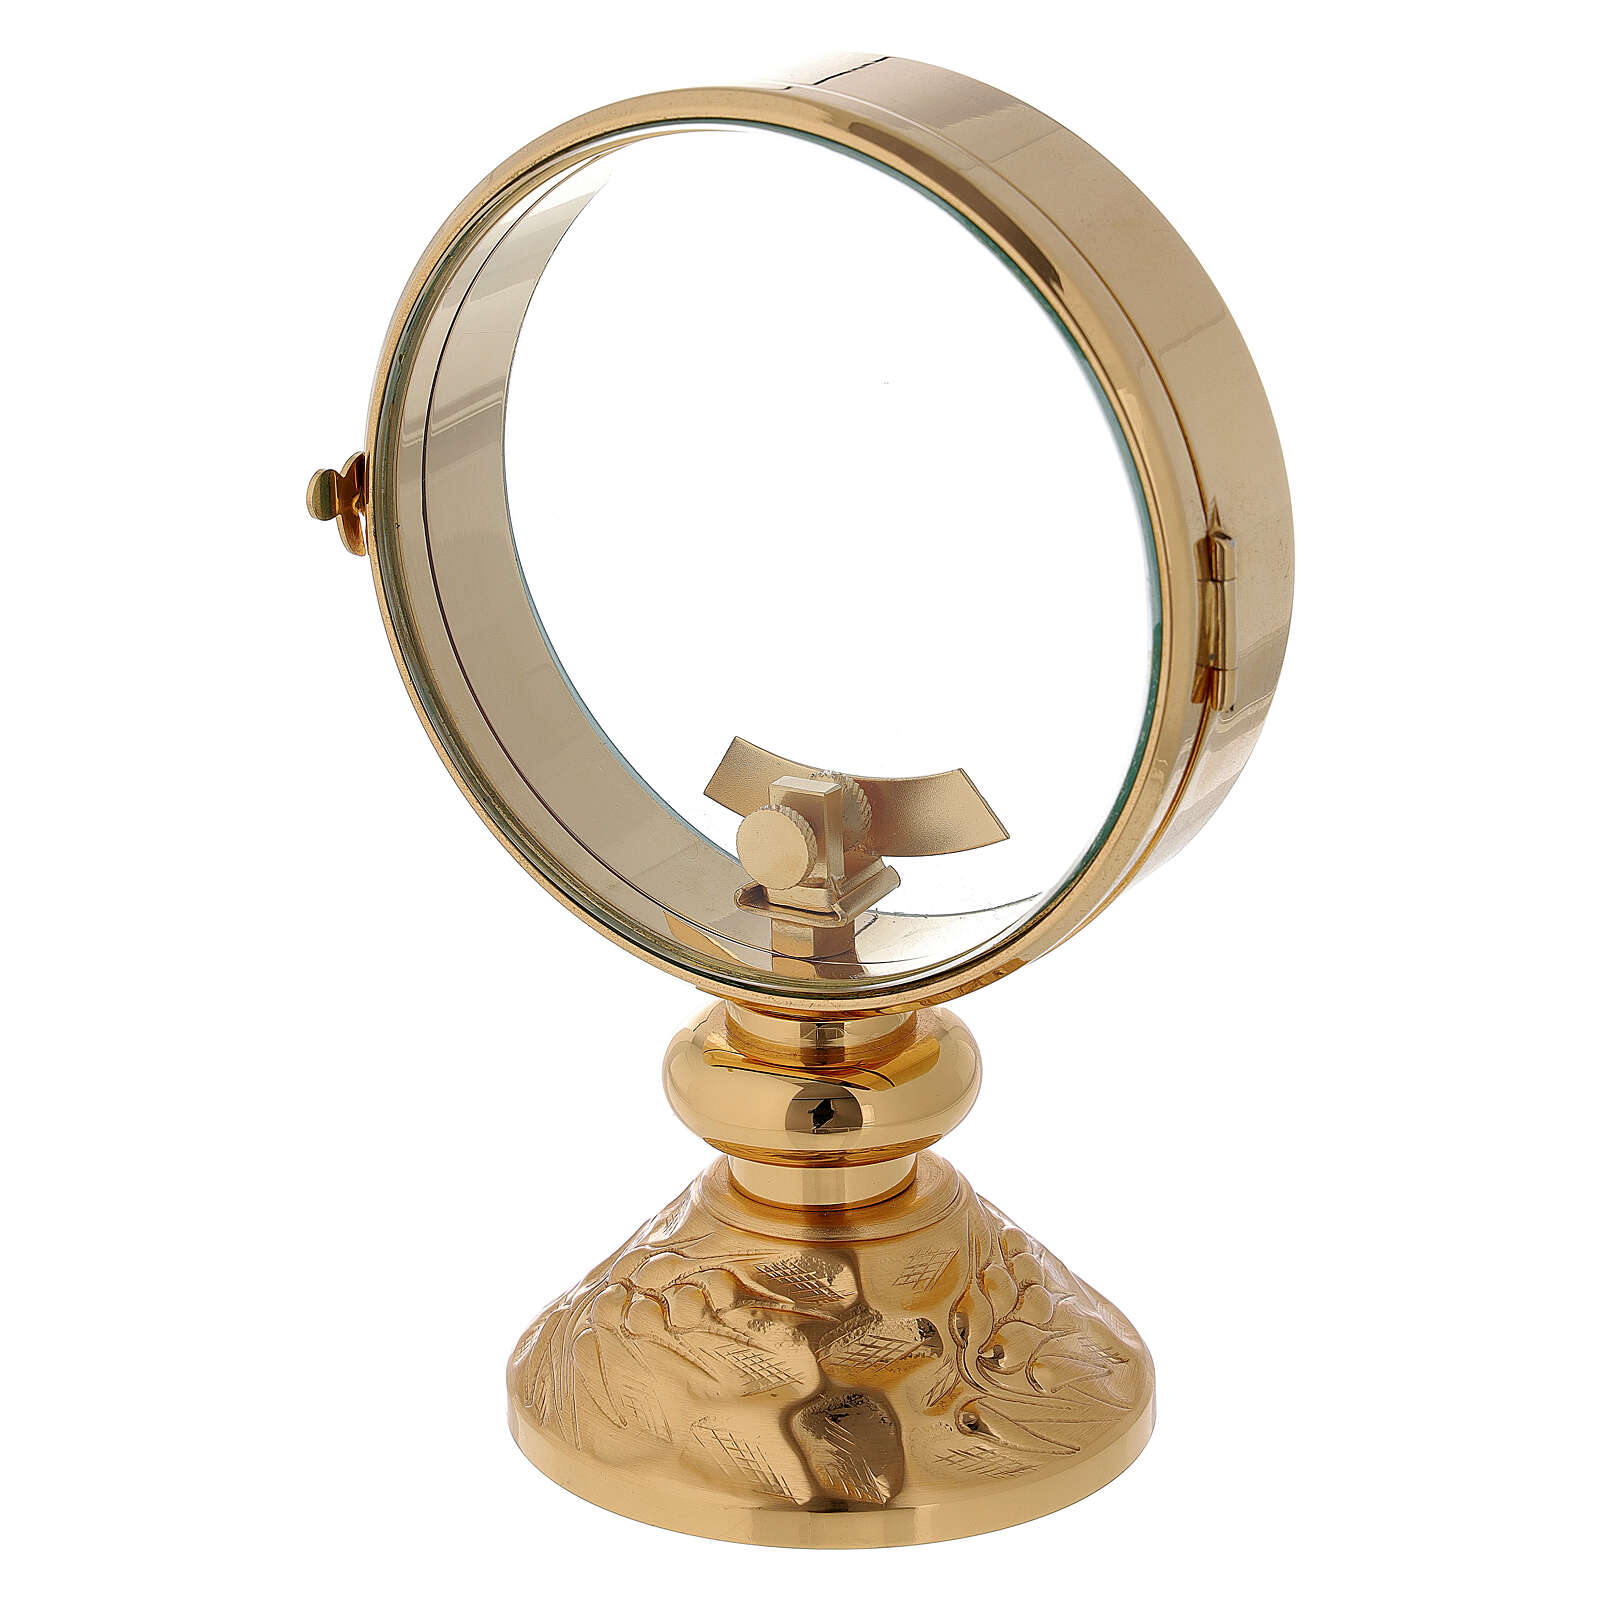 STOCK Gold plated brass monstrance spike pattern on the base 4 in diameter 4